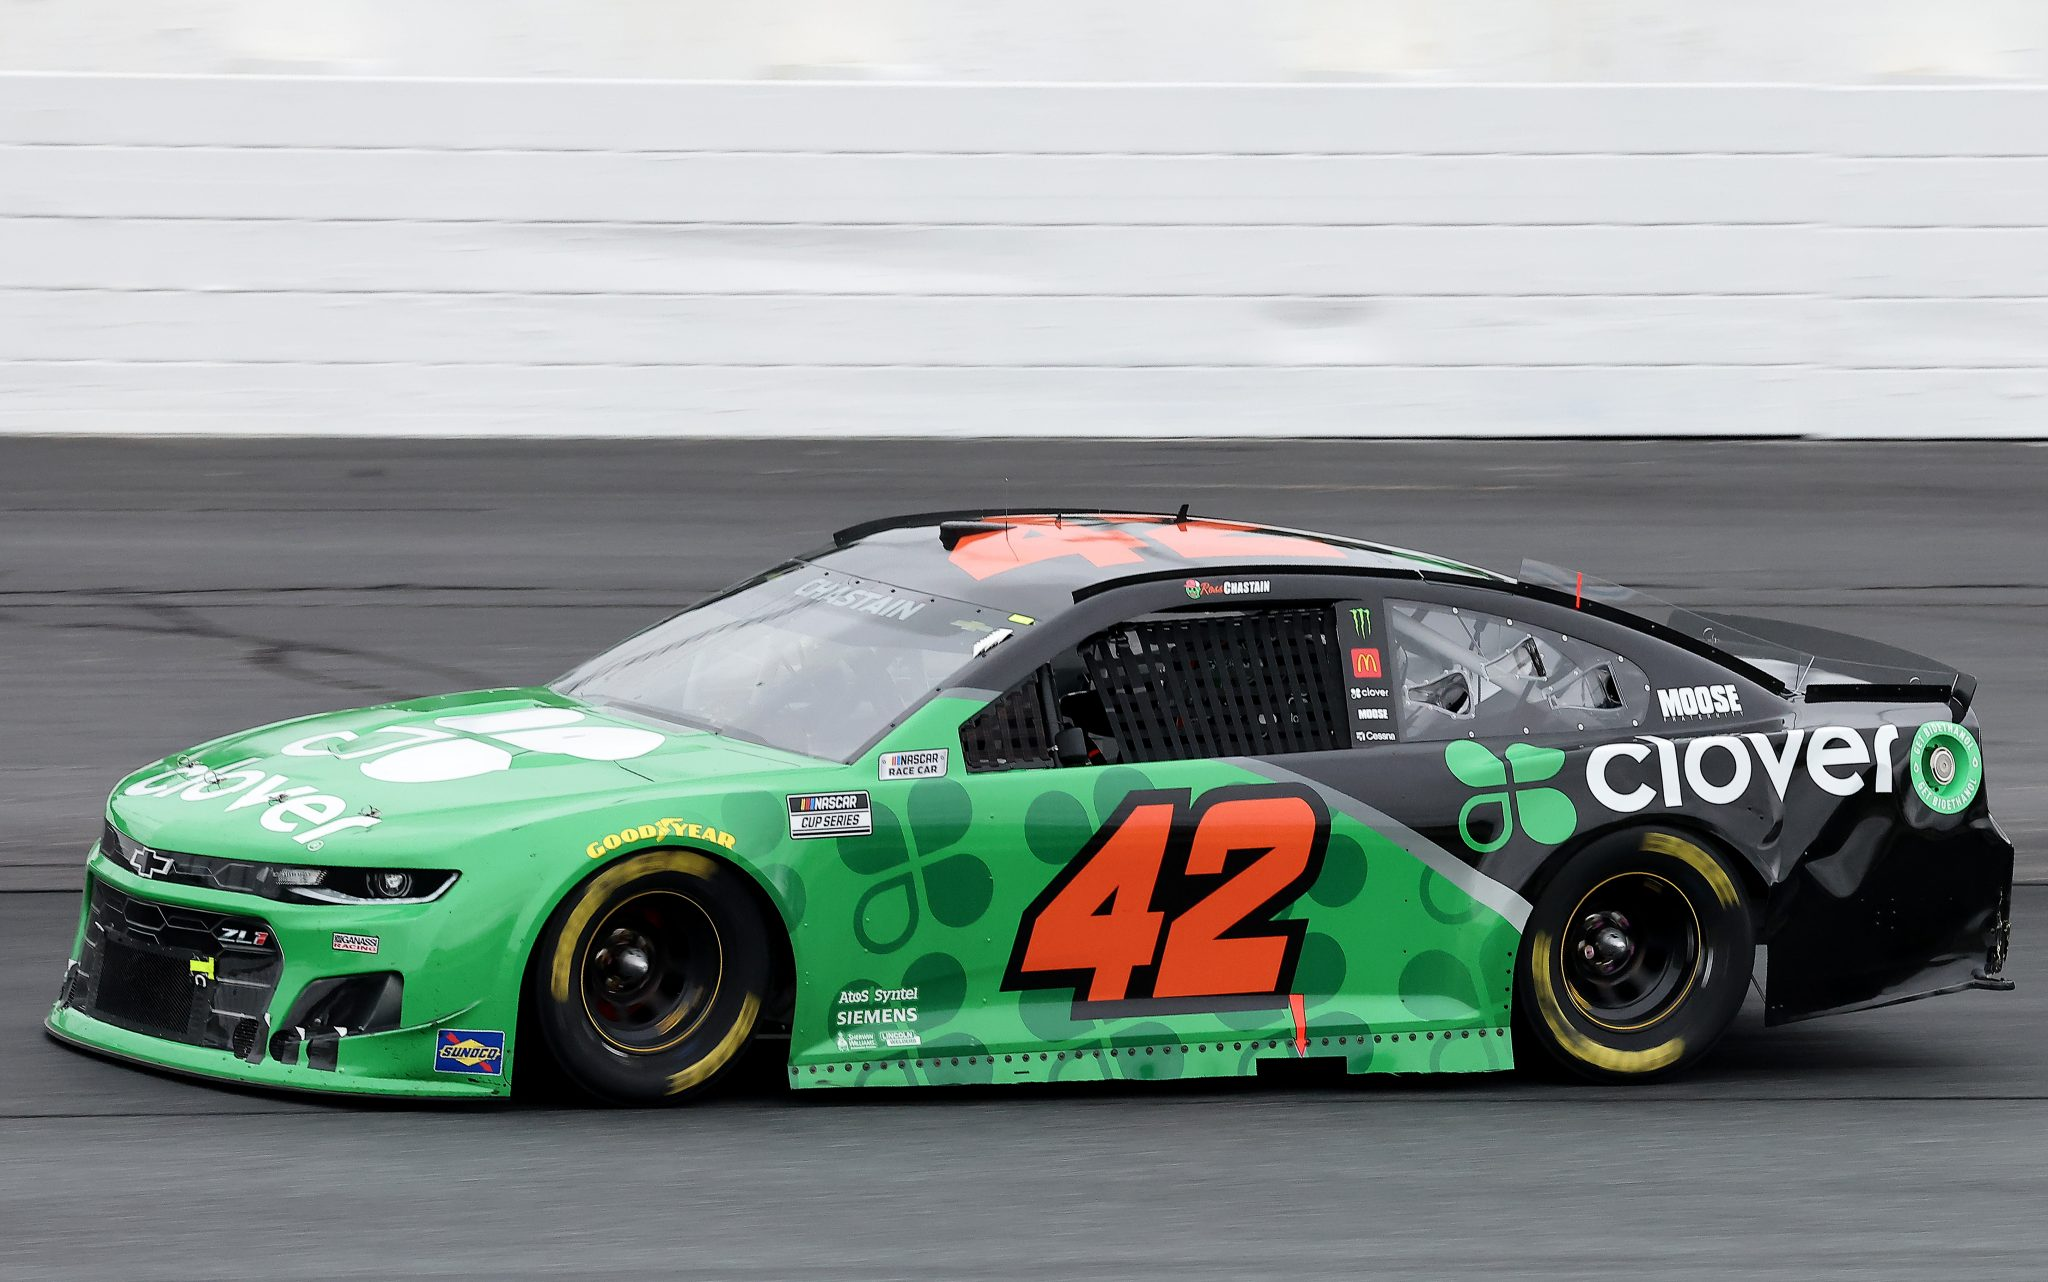 LOUDON, NEW HAMPSHIRE - JULY 18: Ross Chastain, driver of the #42 Clover Chevrolet, drives during the NASCAR Cup Series Foxwoods Resort Casino 301 at New Hampshire Motor Speedway on July 18, 2021 in Loudon, New Hampshire. (Photo by James Gilbert/Getty Images) | Getty Images